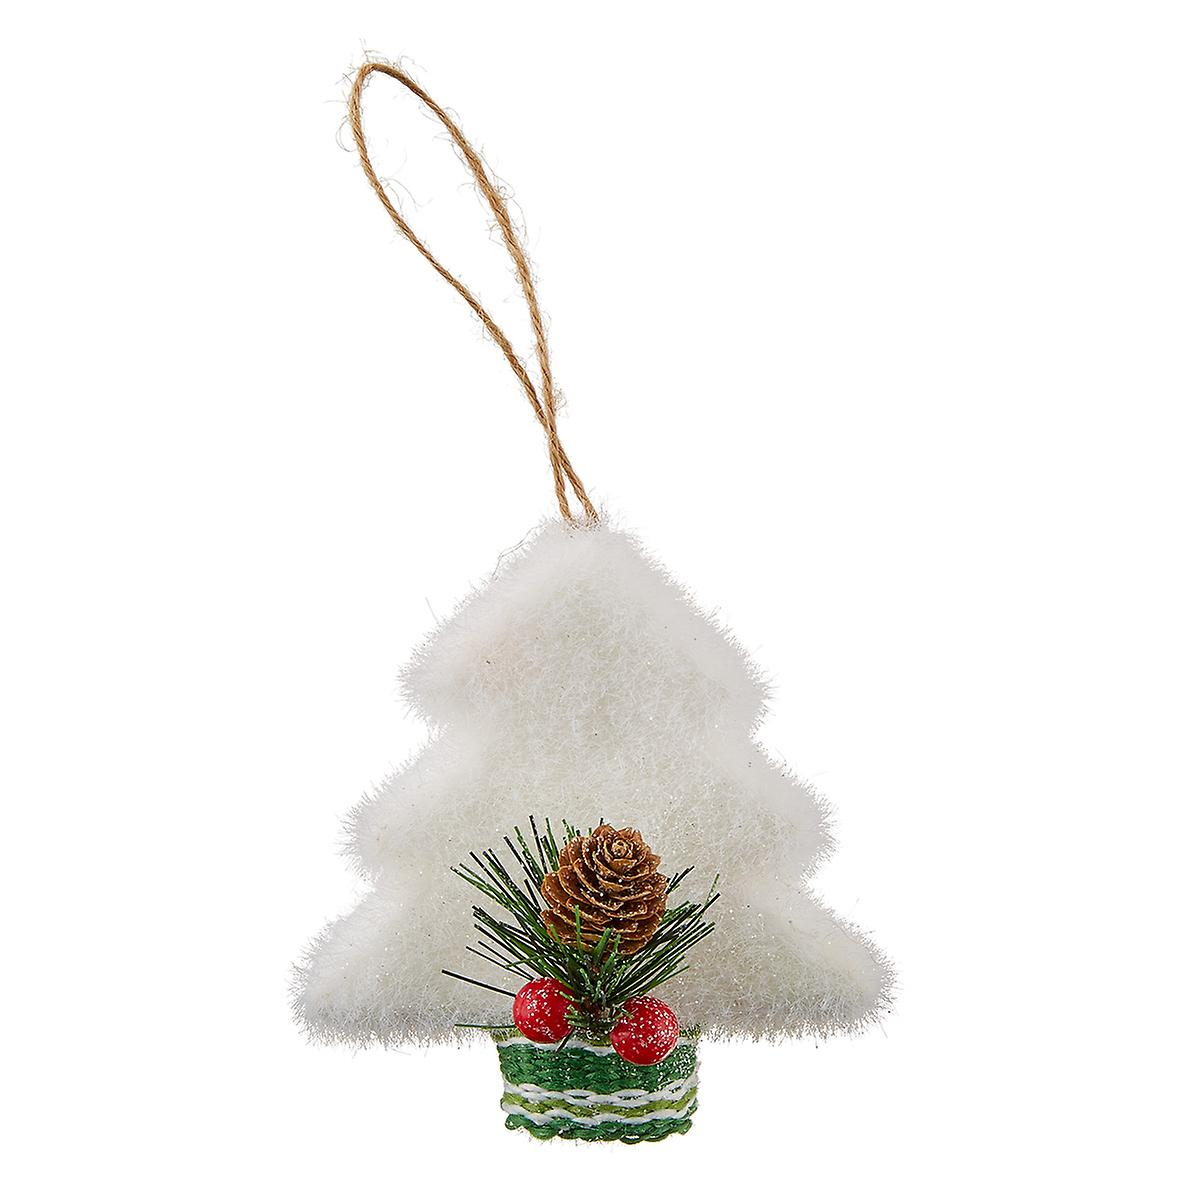 Christmas Tree with Holly Tie-On Ornament